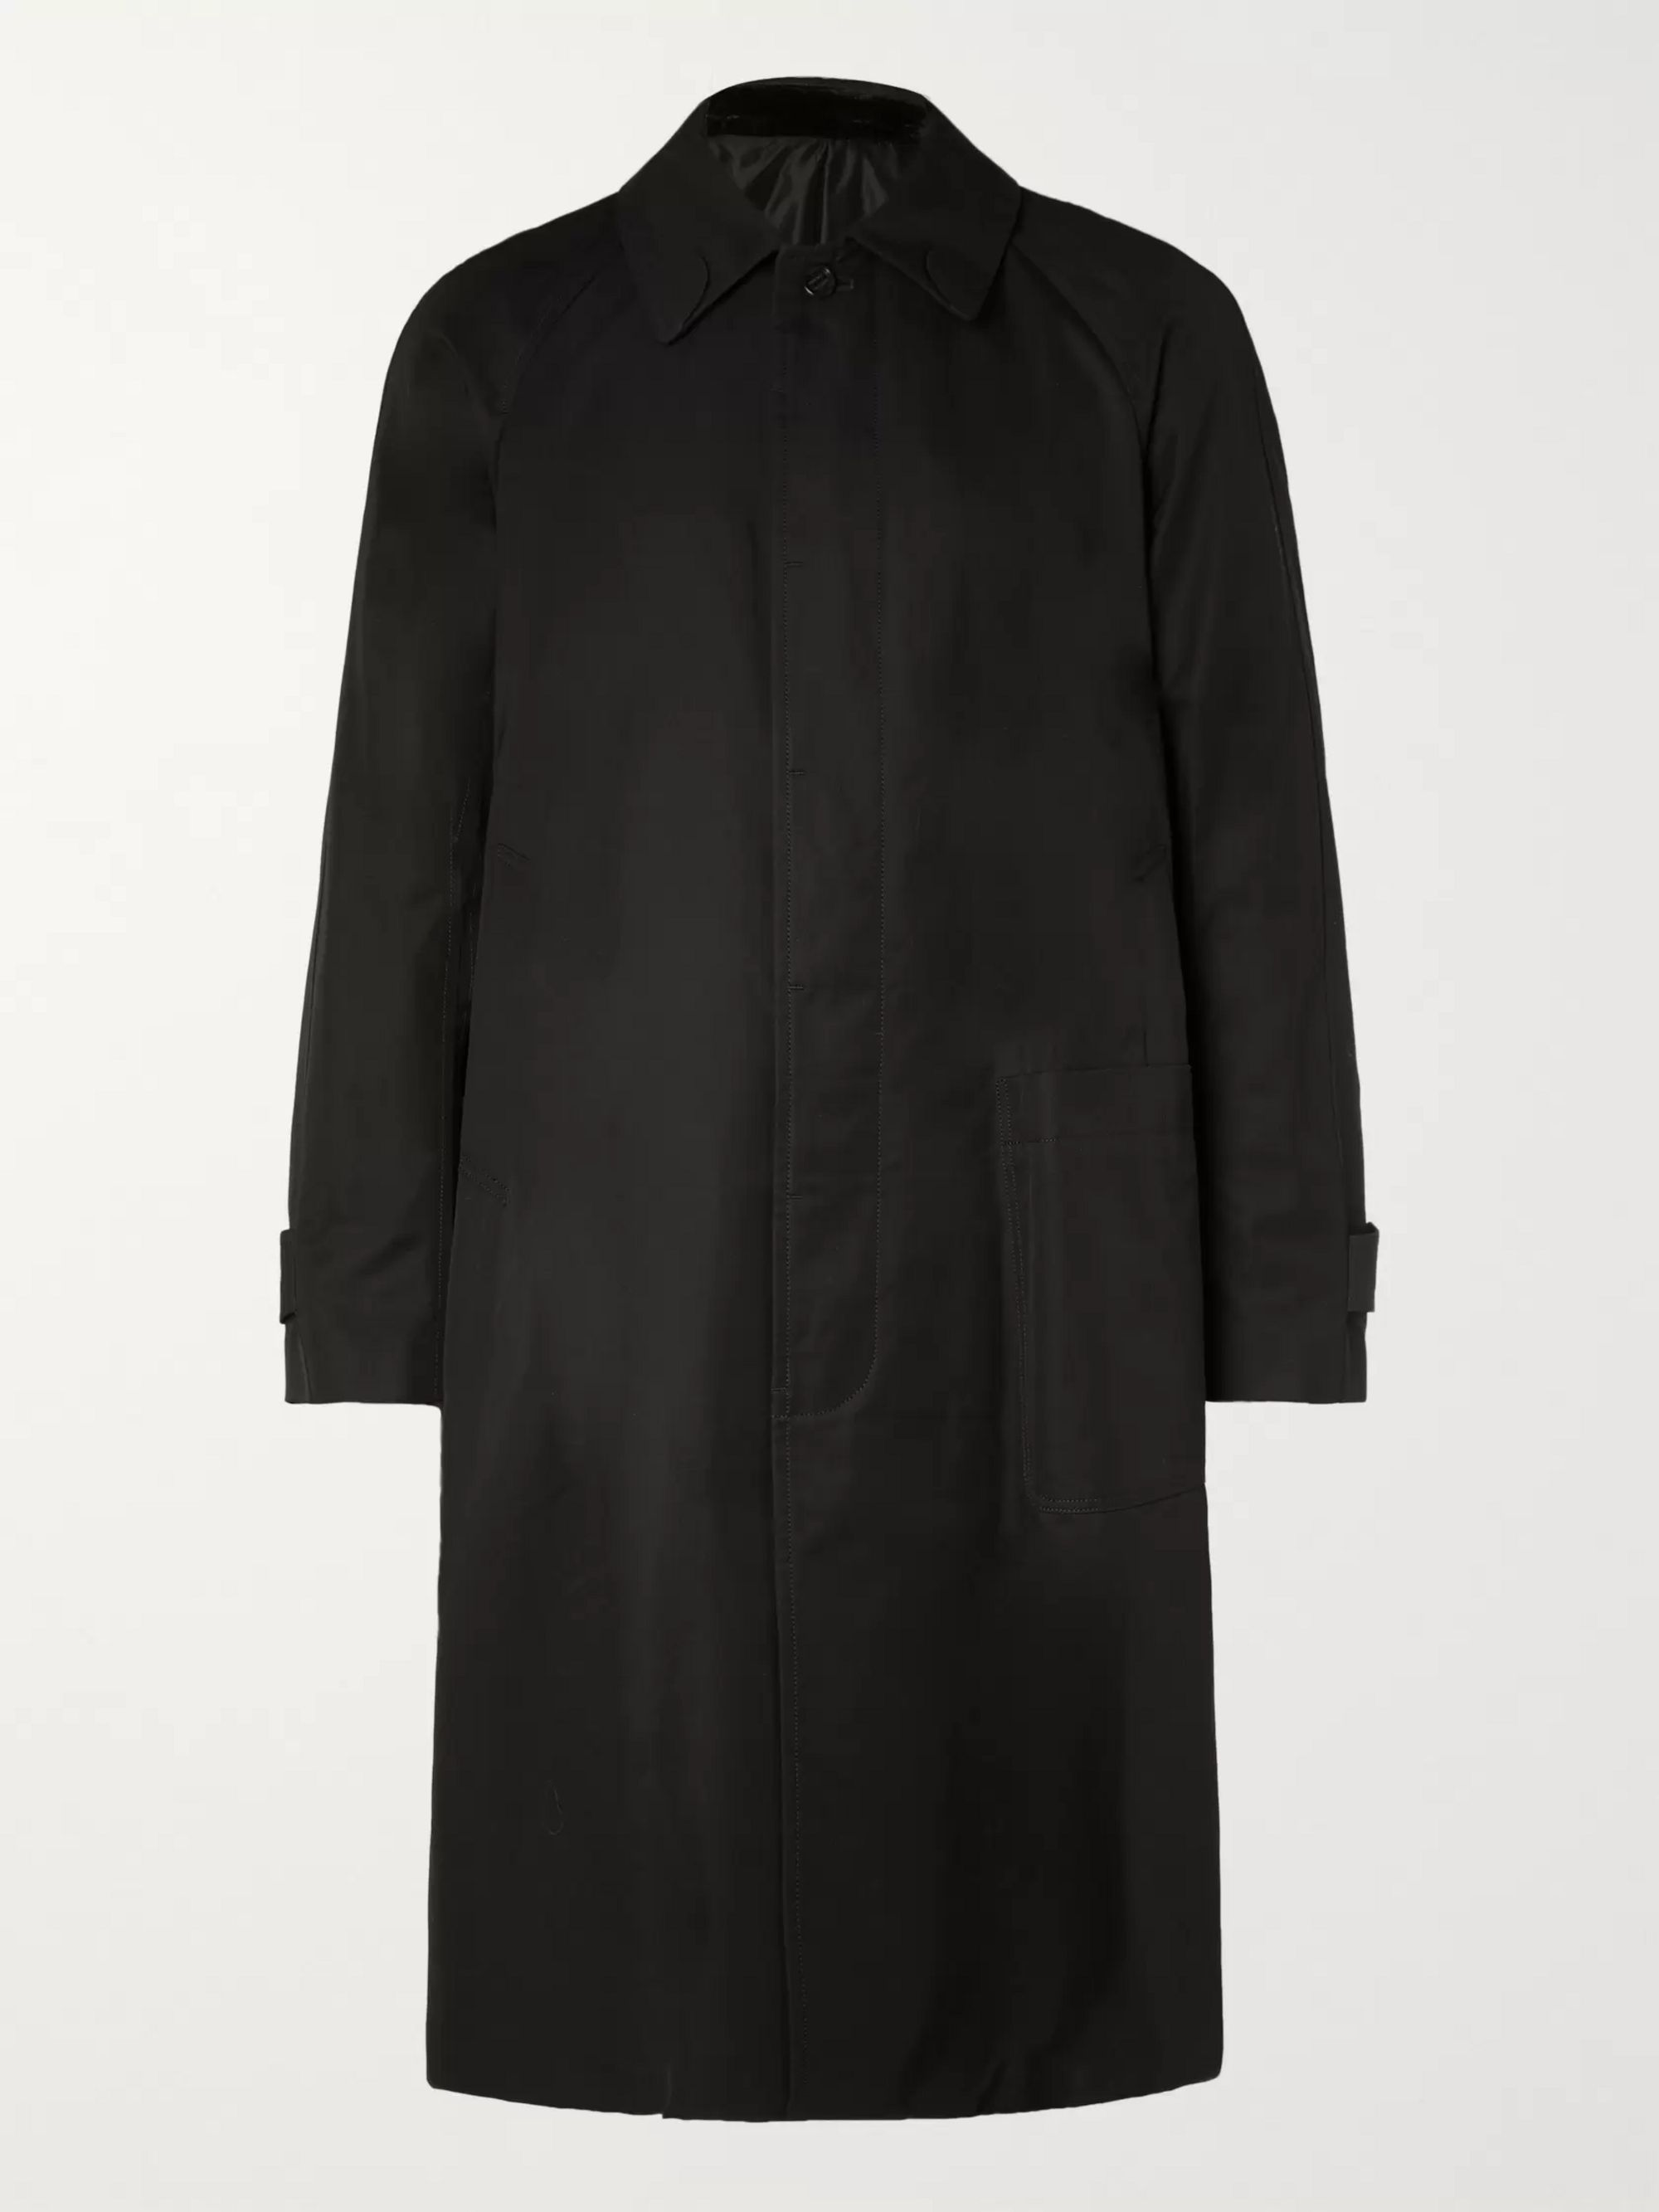 TAKAHIROMIYASHITA TheSoloist. Appliquéd Cotton-Gabardine Trench Coat